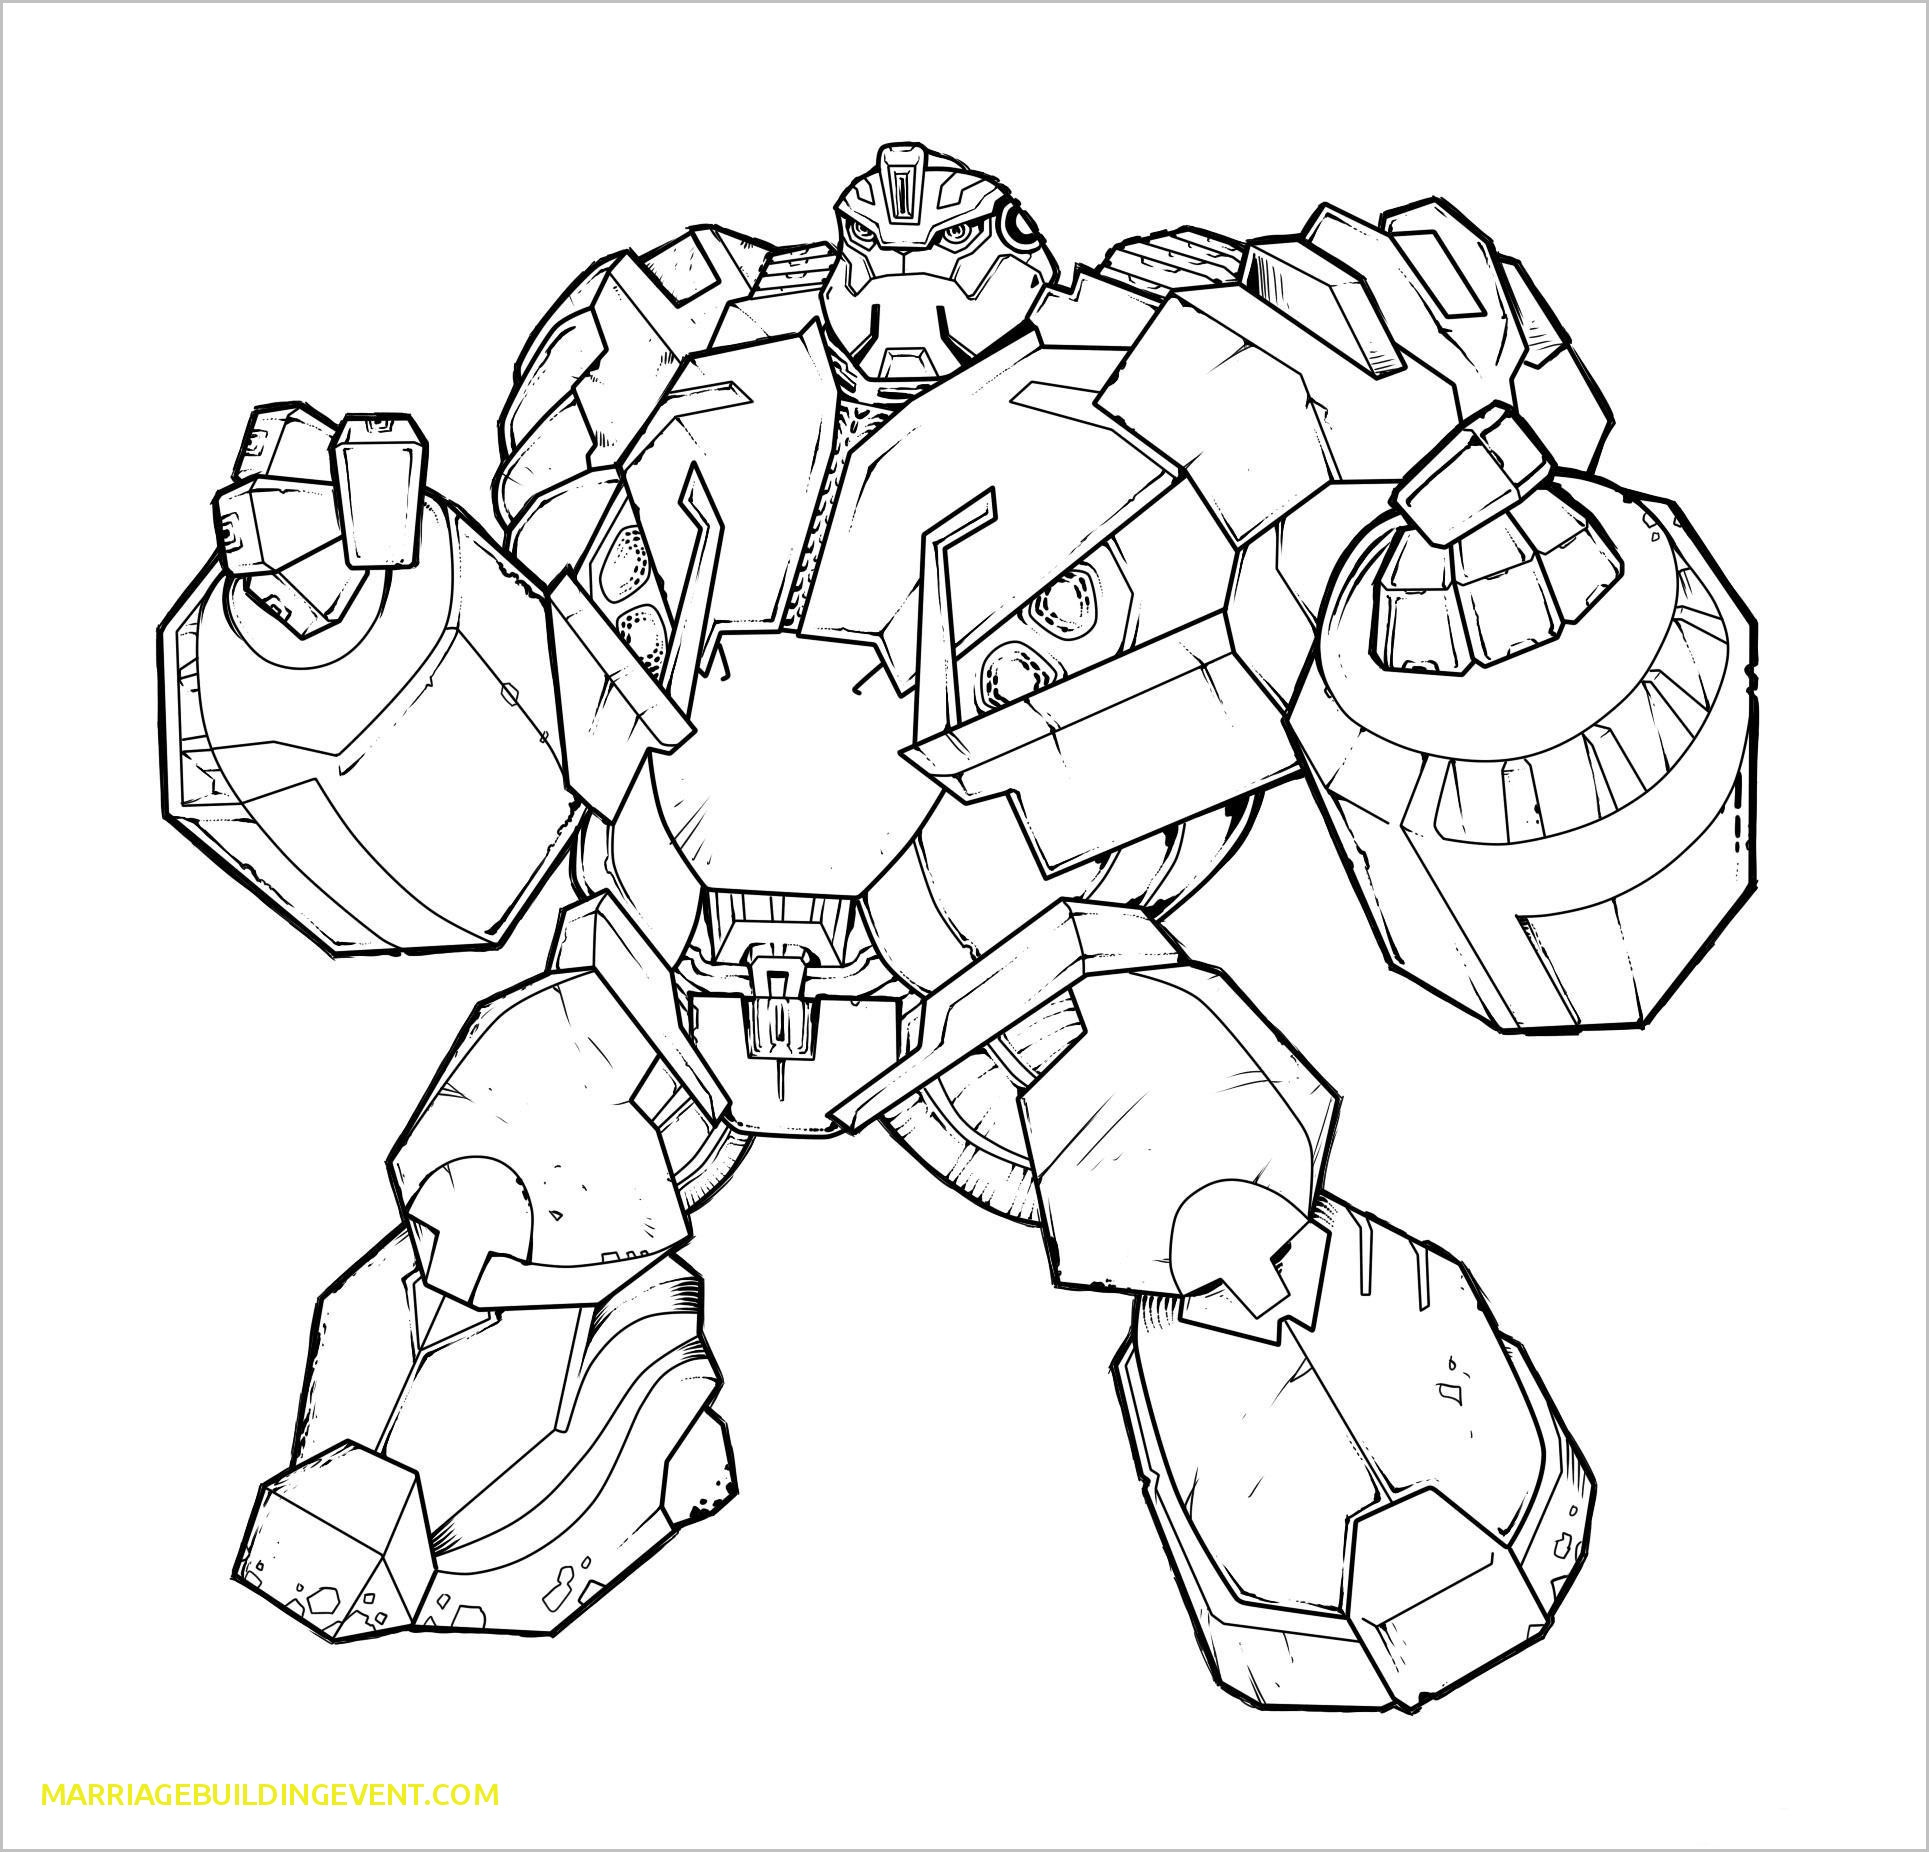 Coloring Pages : Transformer Coloring Pages Optimusme Free Dinosaurs - Transformers 4 Coloring Pages Free Printable